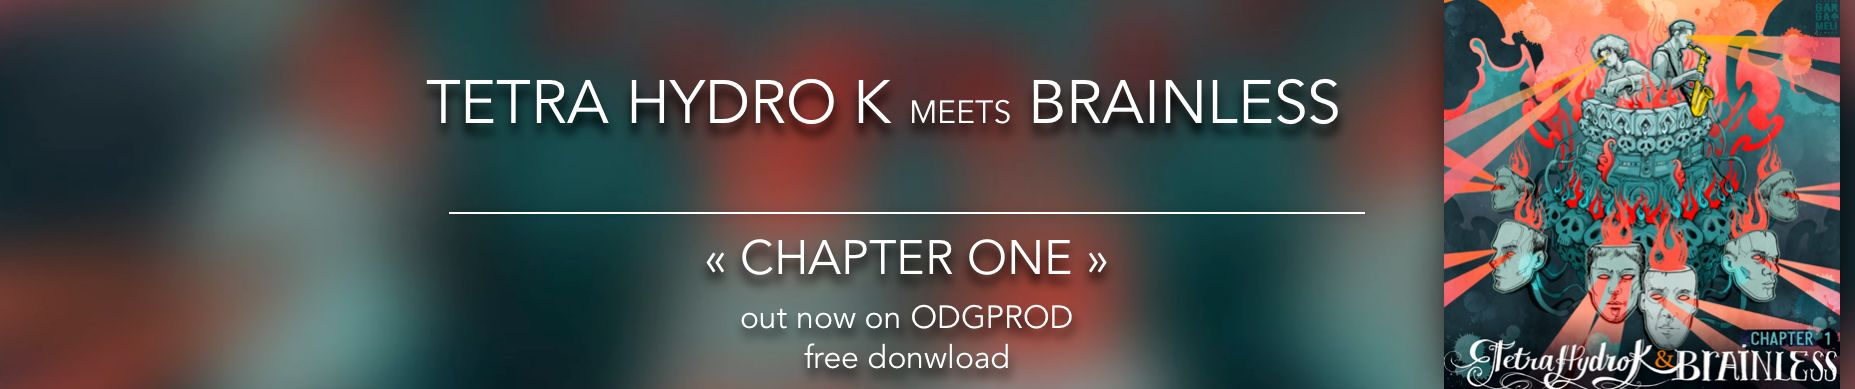 Tetra Hydro K Meets Brainless Chapter One By Free Listening On Soundcloud